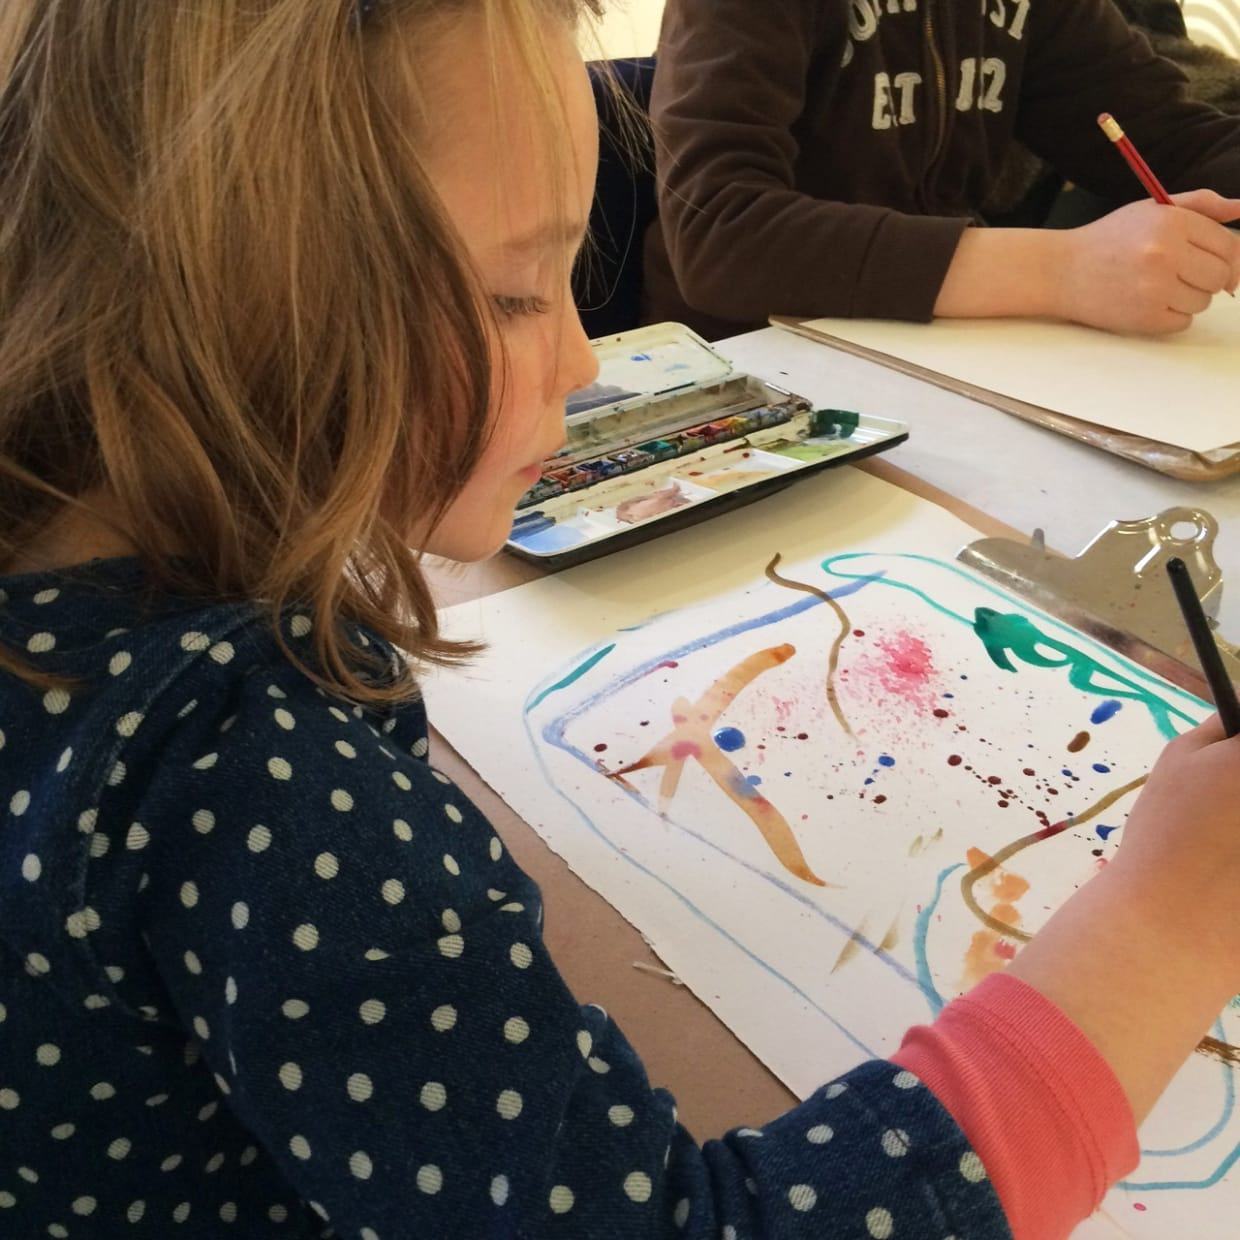 4 Alternative family activities during the Easter holidays